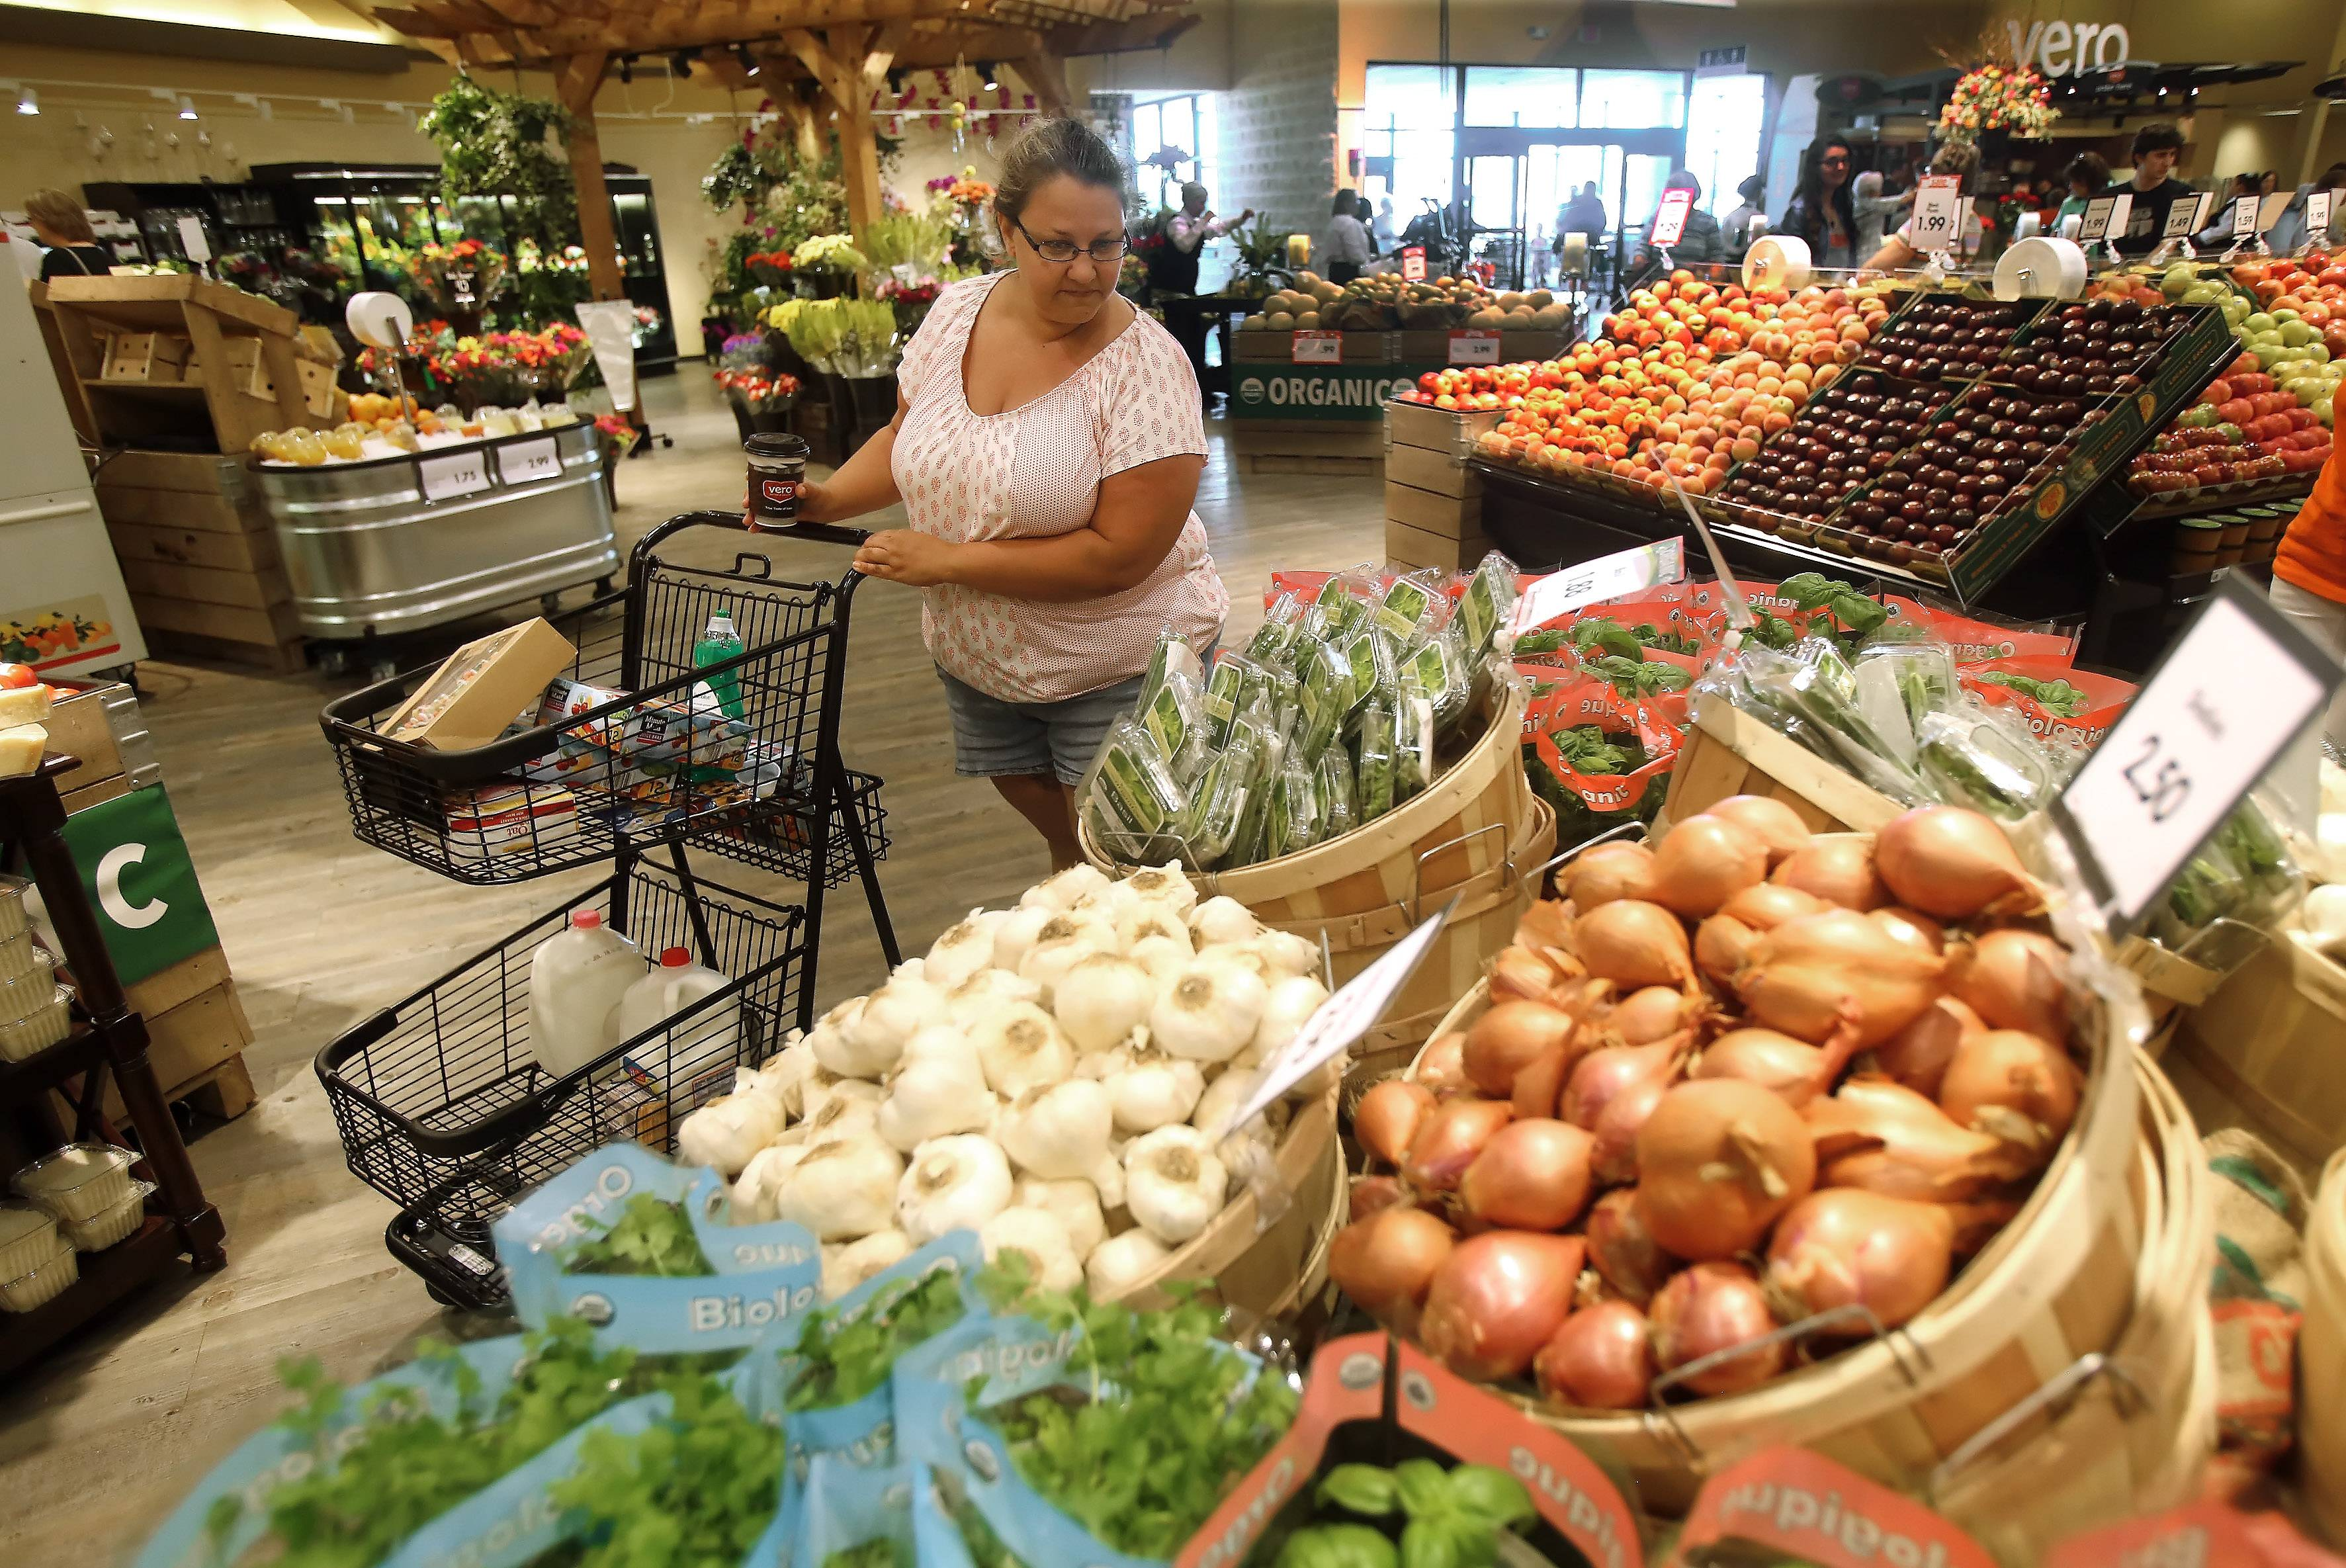 Former Dominick's cashier Kristen Niesen of Gurnee shops in the vegetable aisle during Tuesday's grand opening of Mariano's grocery store in Gurnee. Mariano's will add 470 new jobs to the area.